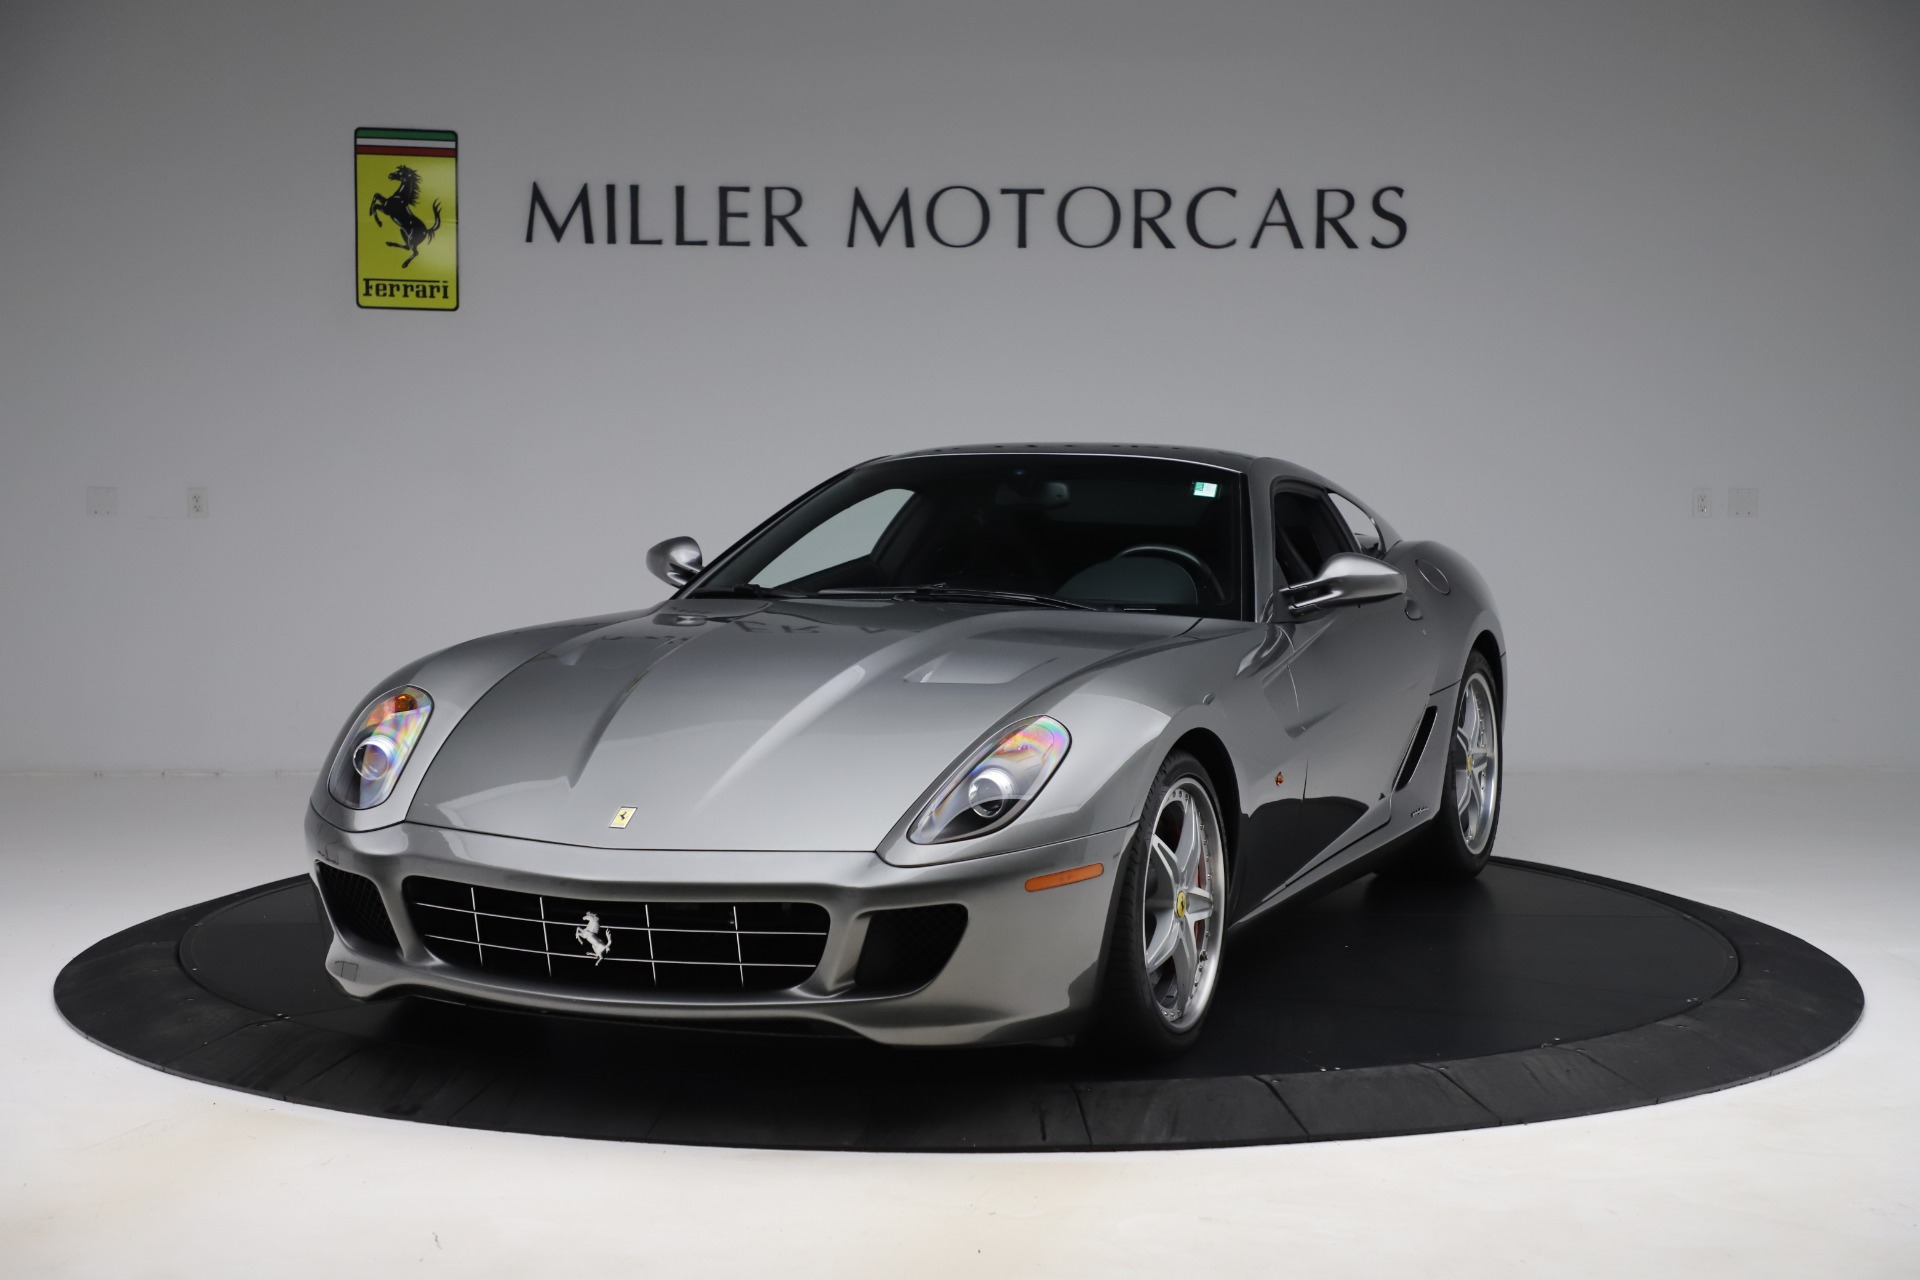 Used 2010 Ferrari 599 GTB Fiorano HGTE For Sale In Westport, CT